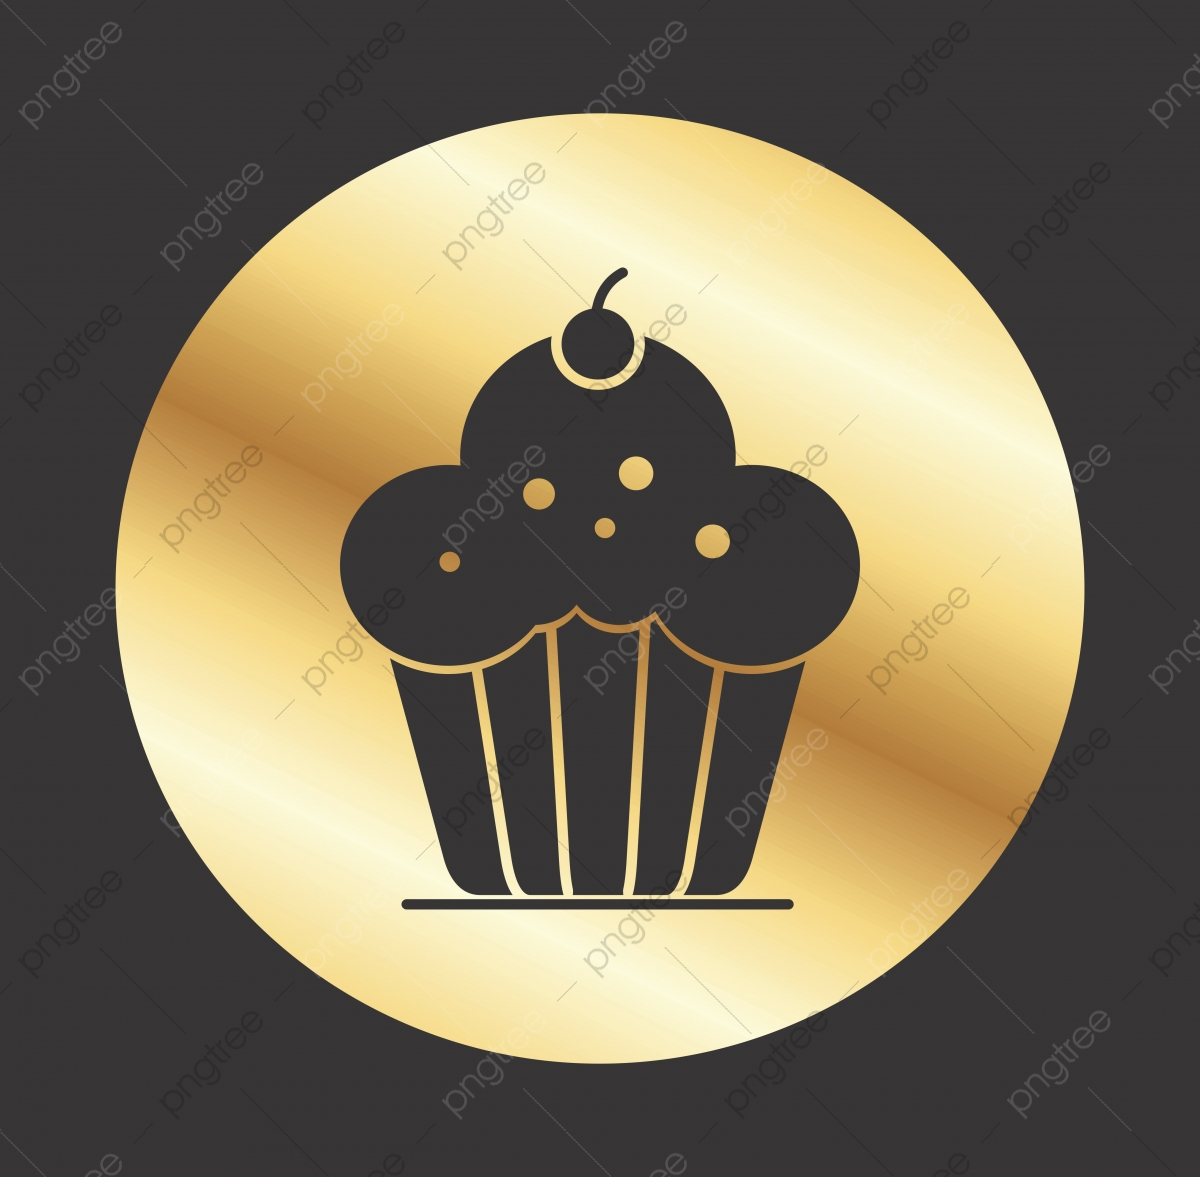 In Icon Cake Png Images Vector And Psd Files Free Download On Pngtree